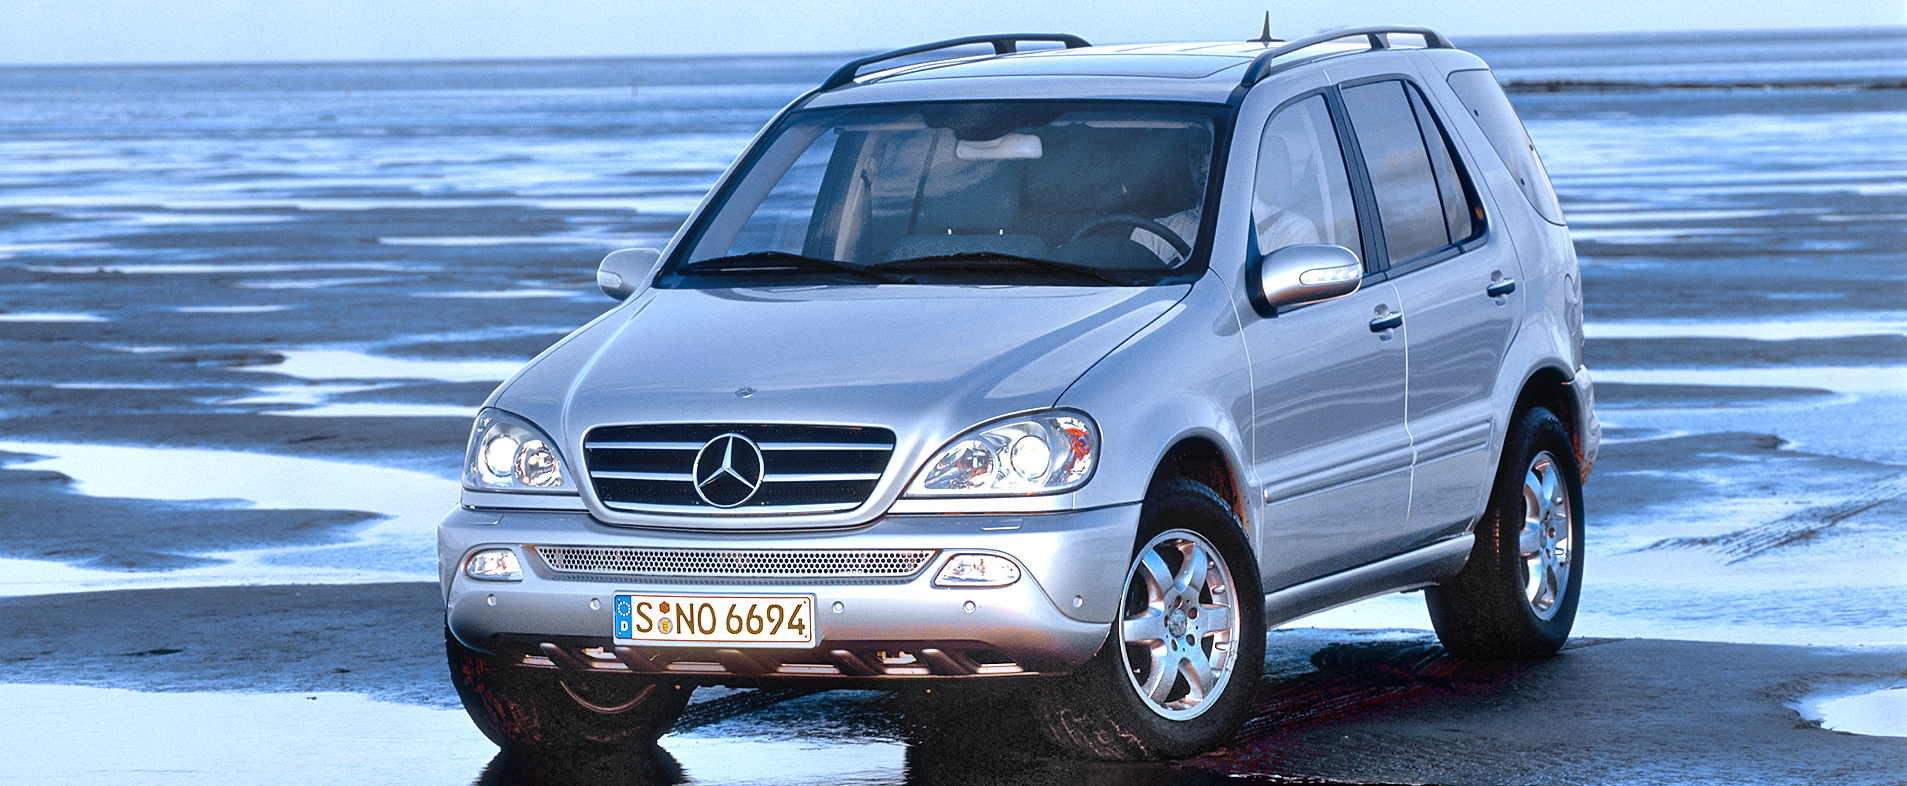 mercedes-benz_ml_500_2